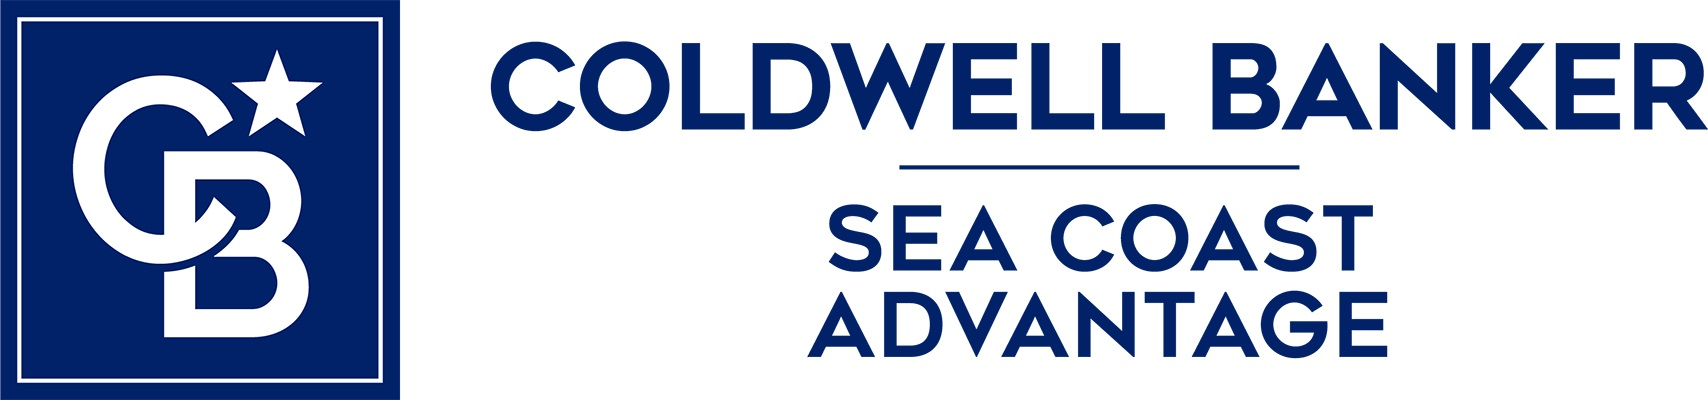 Stephanie Modlin - Coldwell Banker Sea Coast Advantage Realty Logo